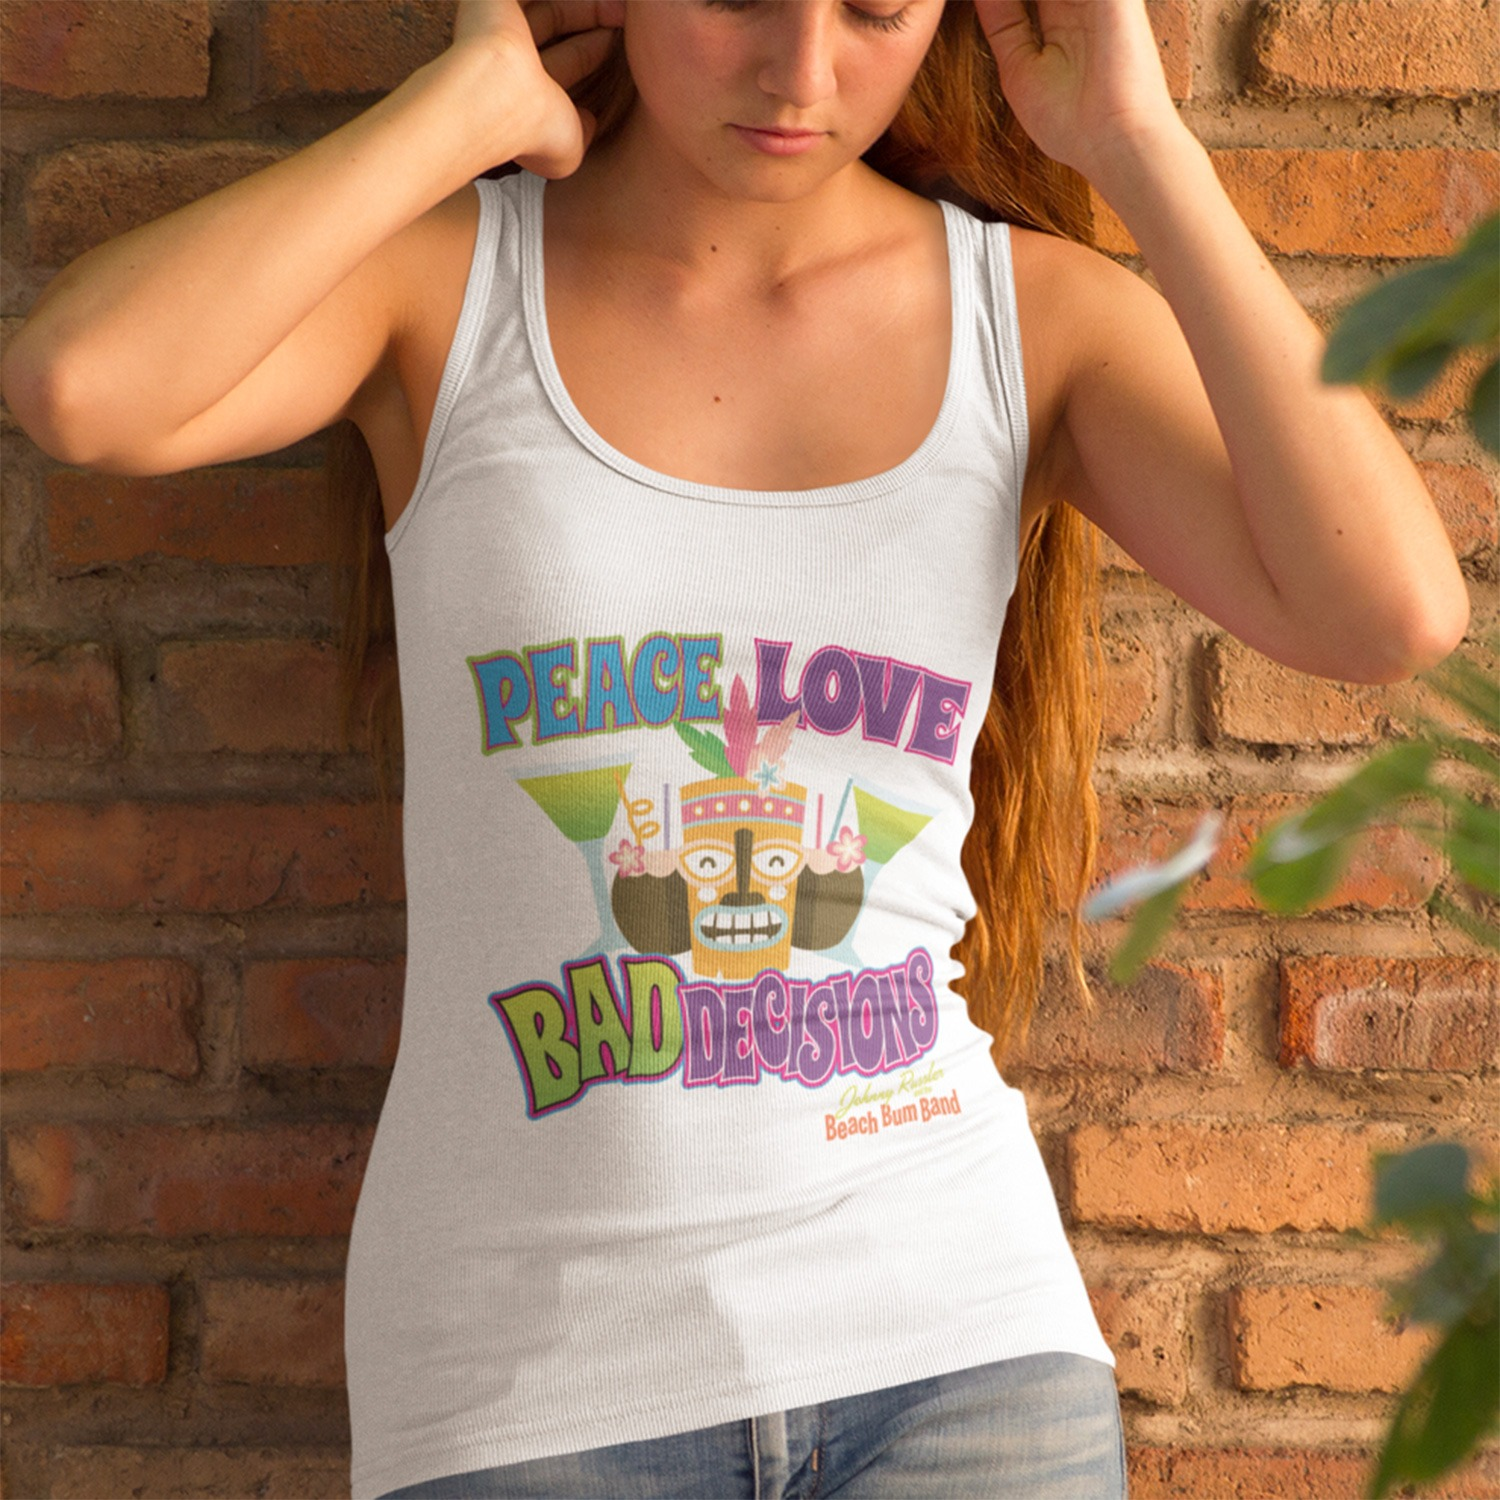 Beach Bum Band Peace Love and Bad Decisions Ladies Racerback Tank, The Troprock Shop